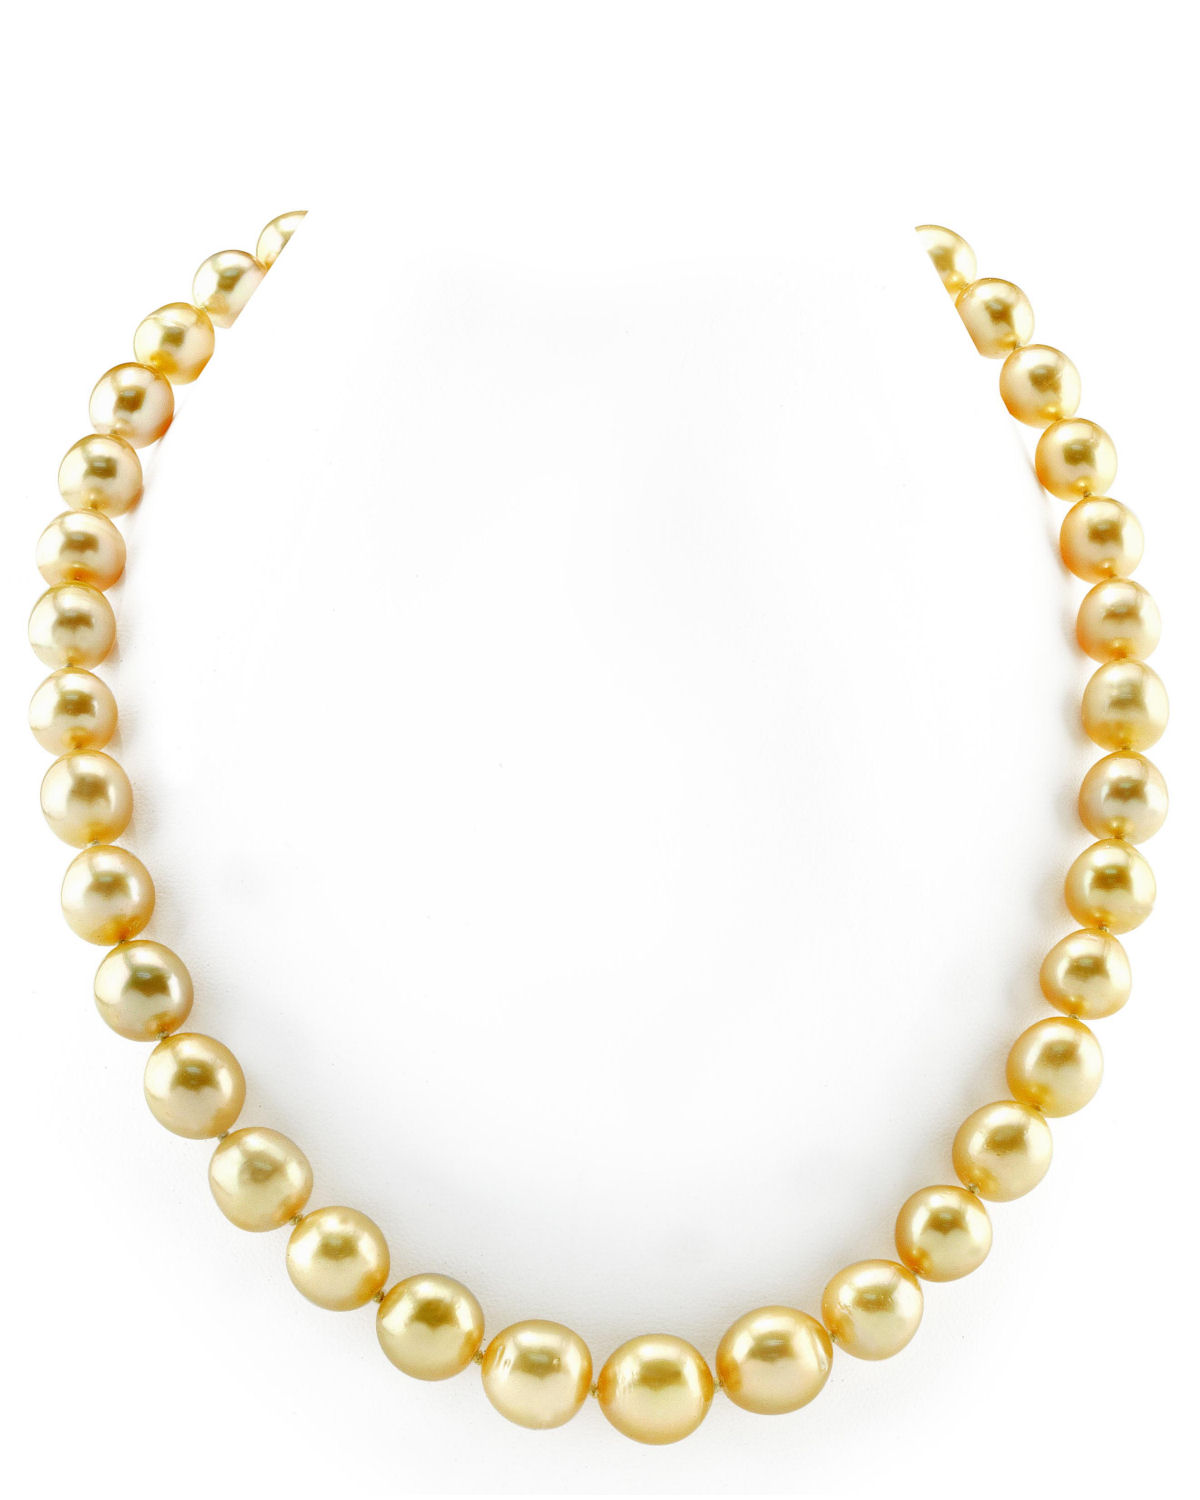 9-12mm Oval-Shaped Golden South Sea Pearl Necklace